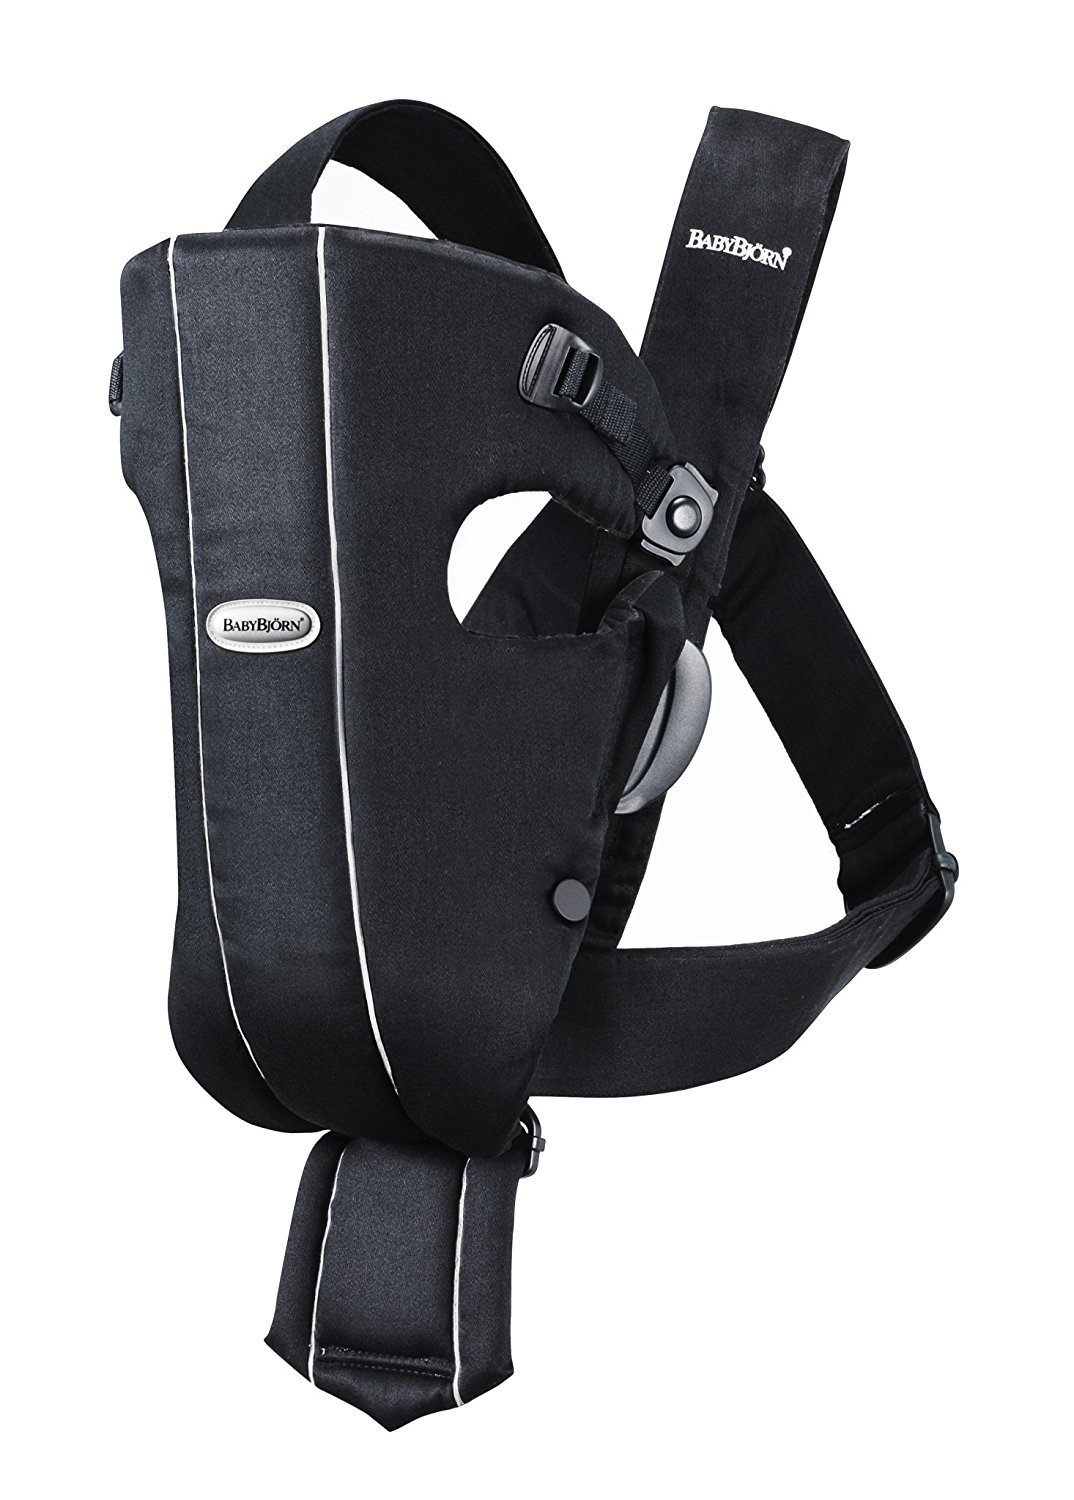 BABYBJORN Best Baby Carrier